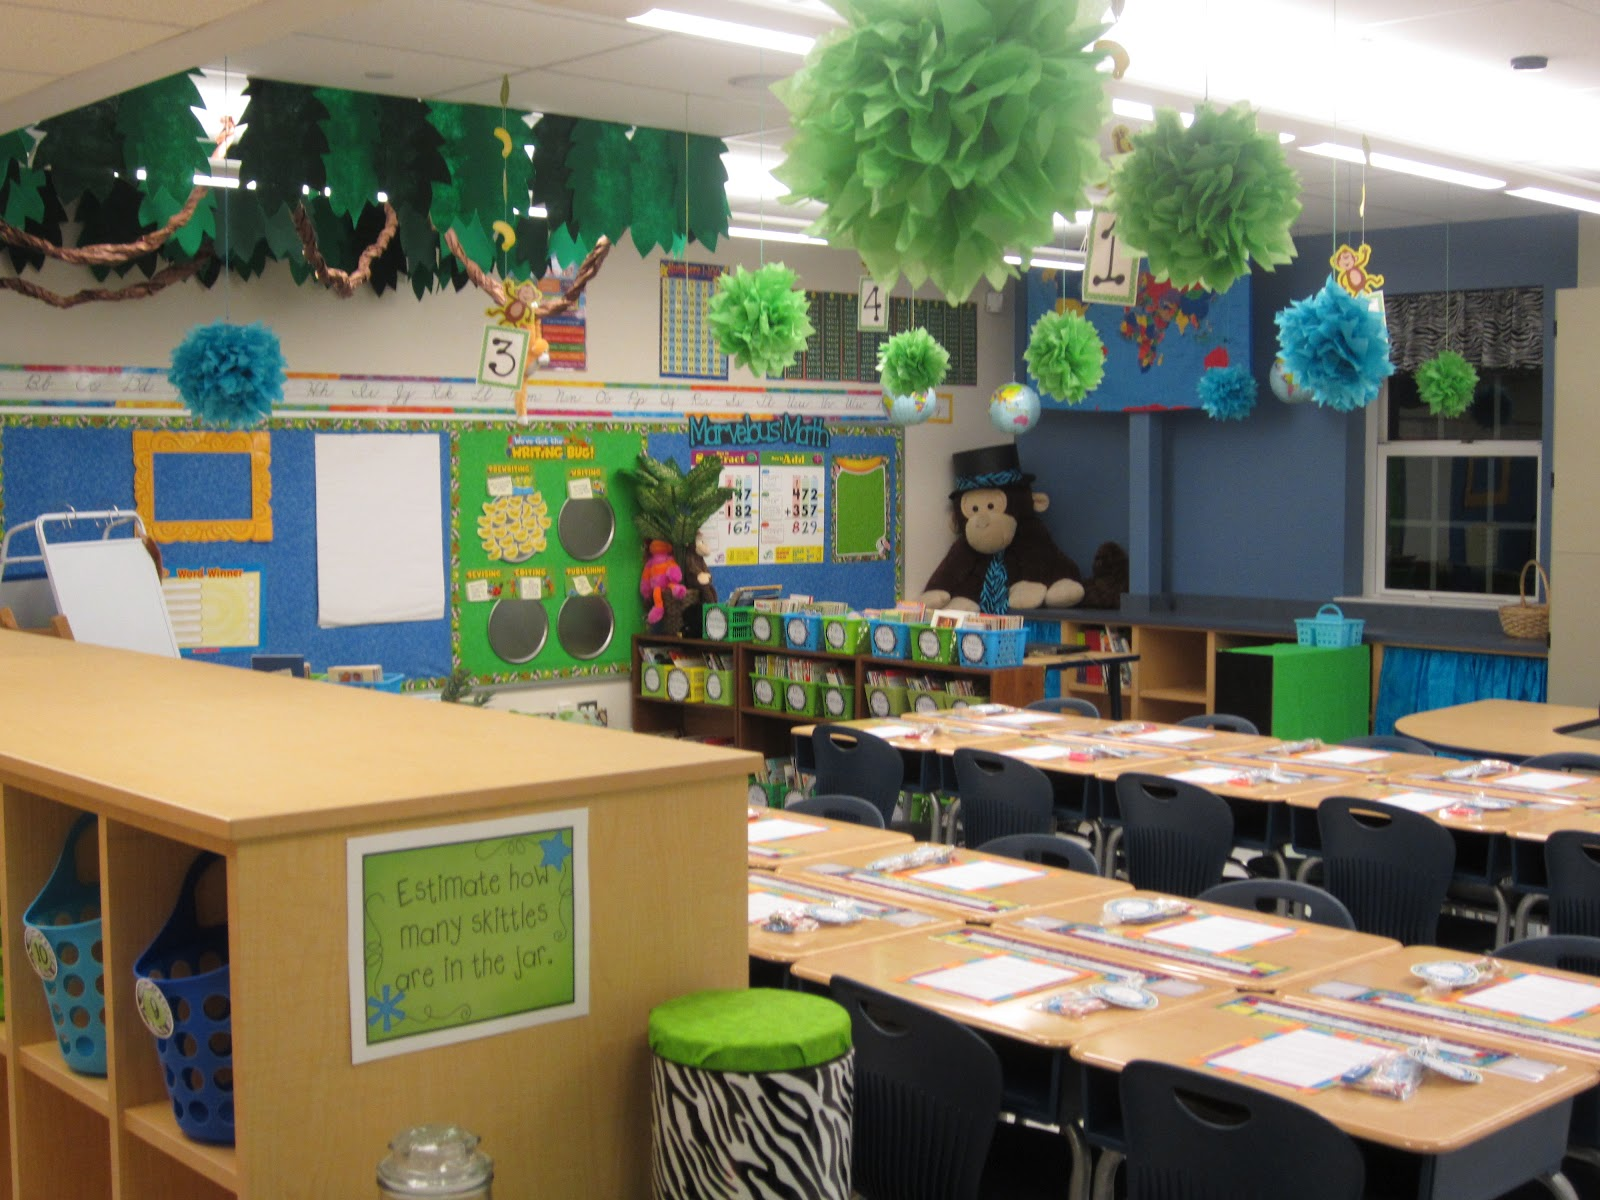 Design Ideas For Classroom : The creative chalkboard classroom tour pictures galore